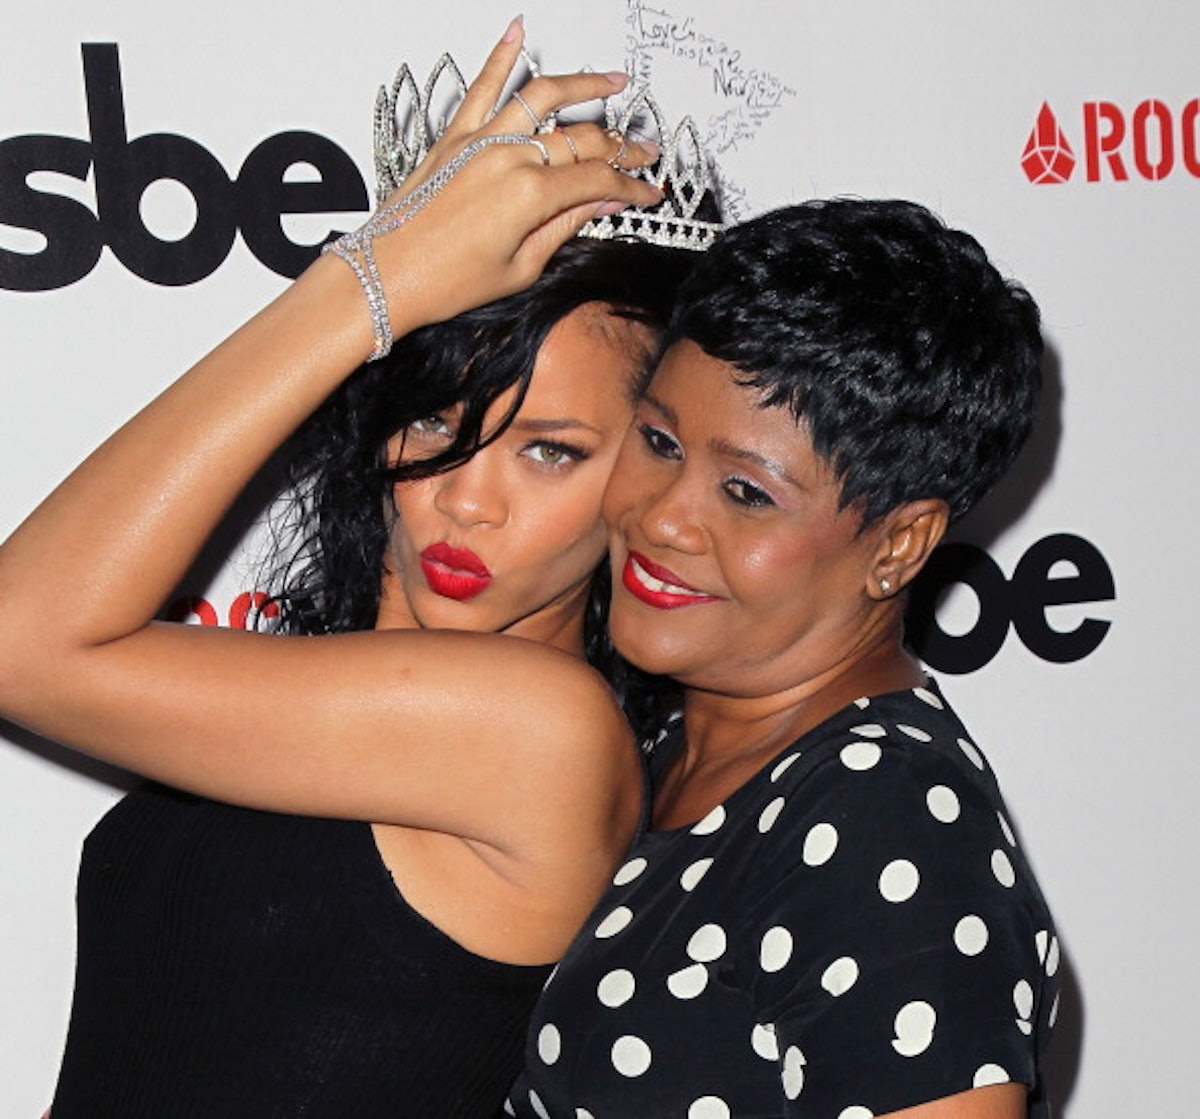 The City Of West Hollywood Celebrates Halloween 2012 By Naming Rihanna The Queen Of The West Hollywo...